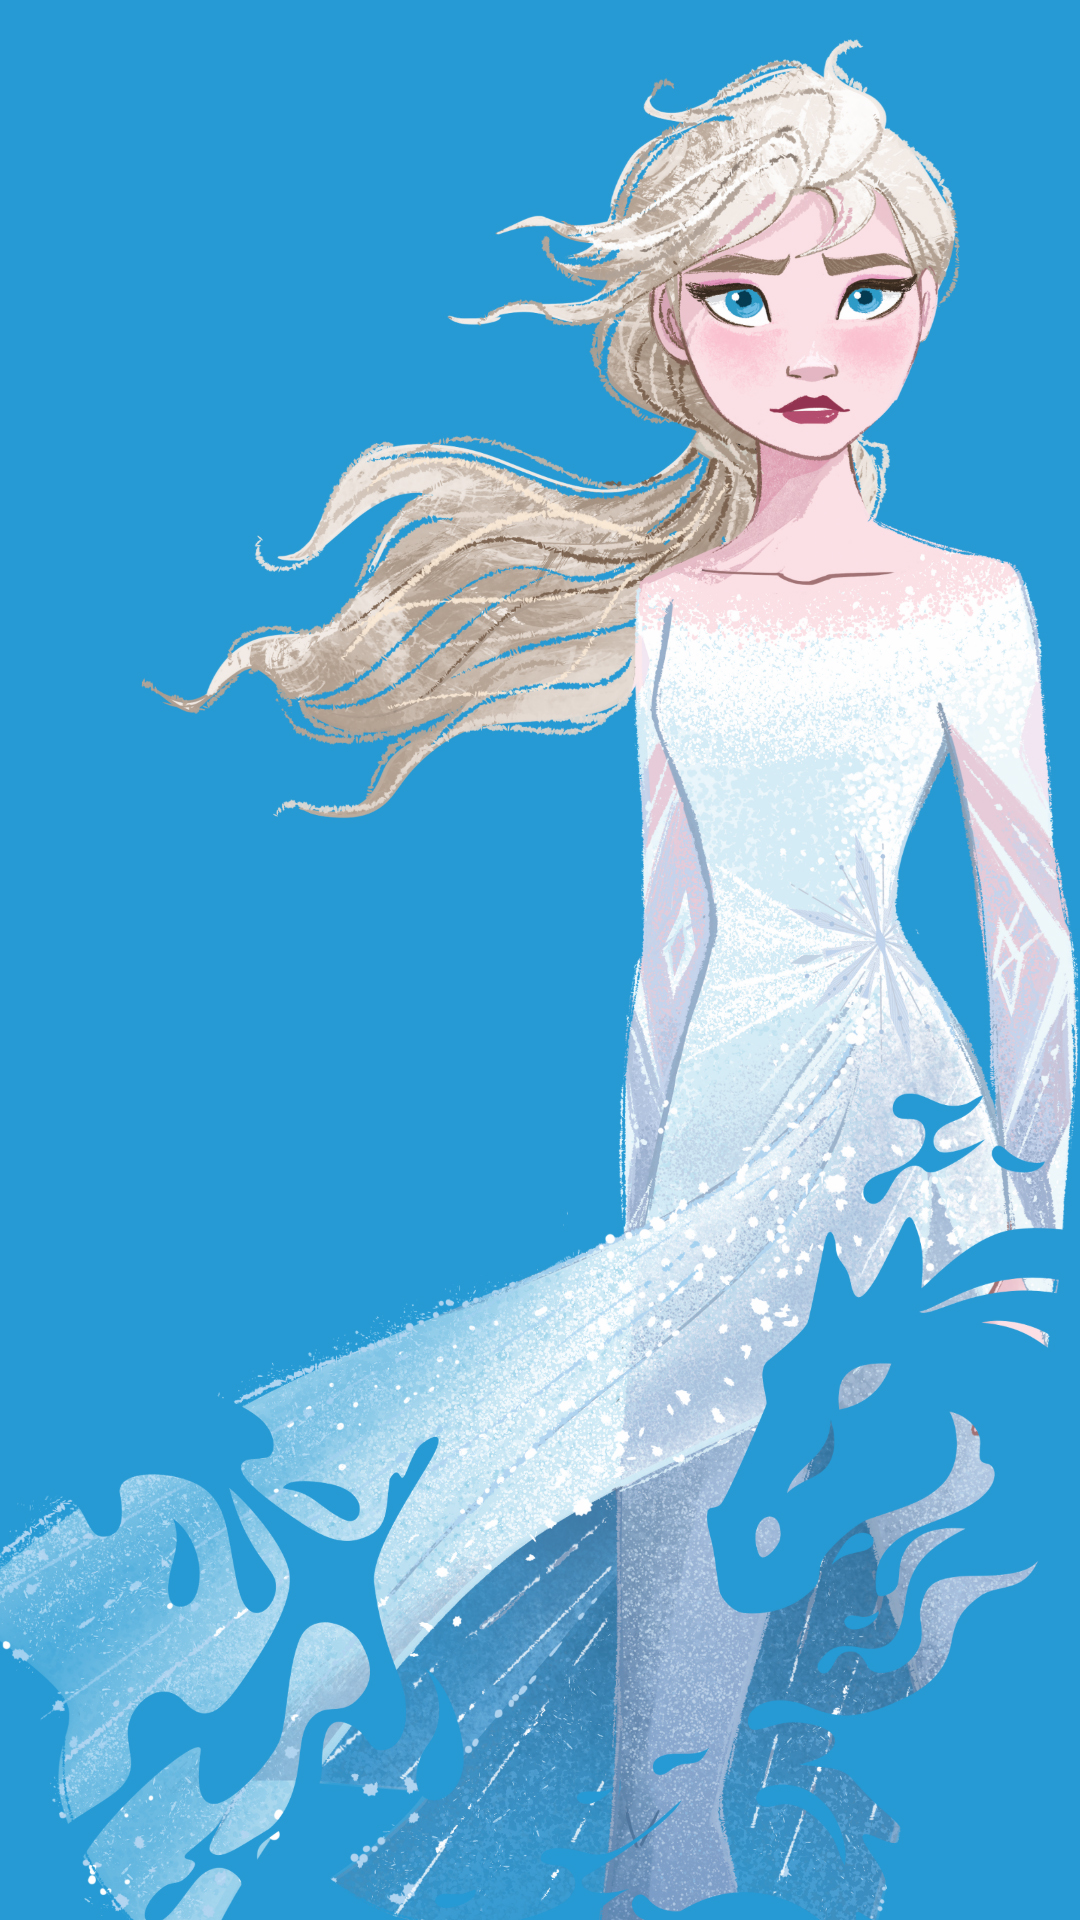 Big Frozen 2 Phone Wallpapers With Elsa Youloveitcom